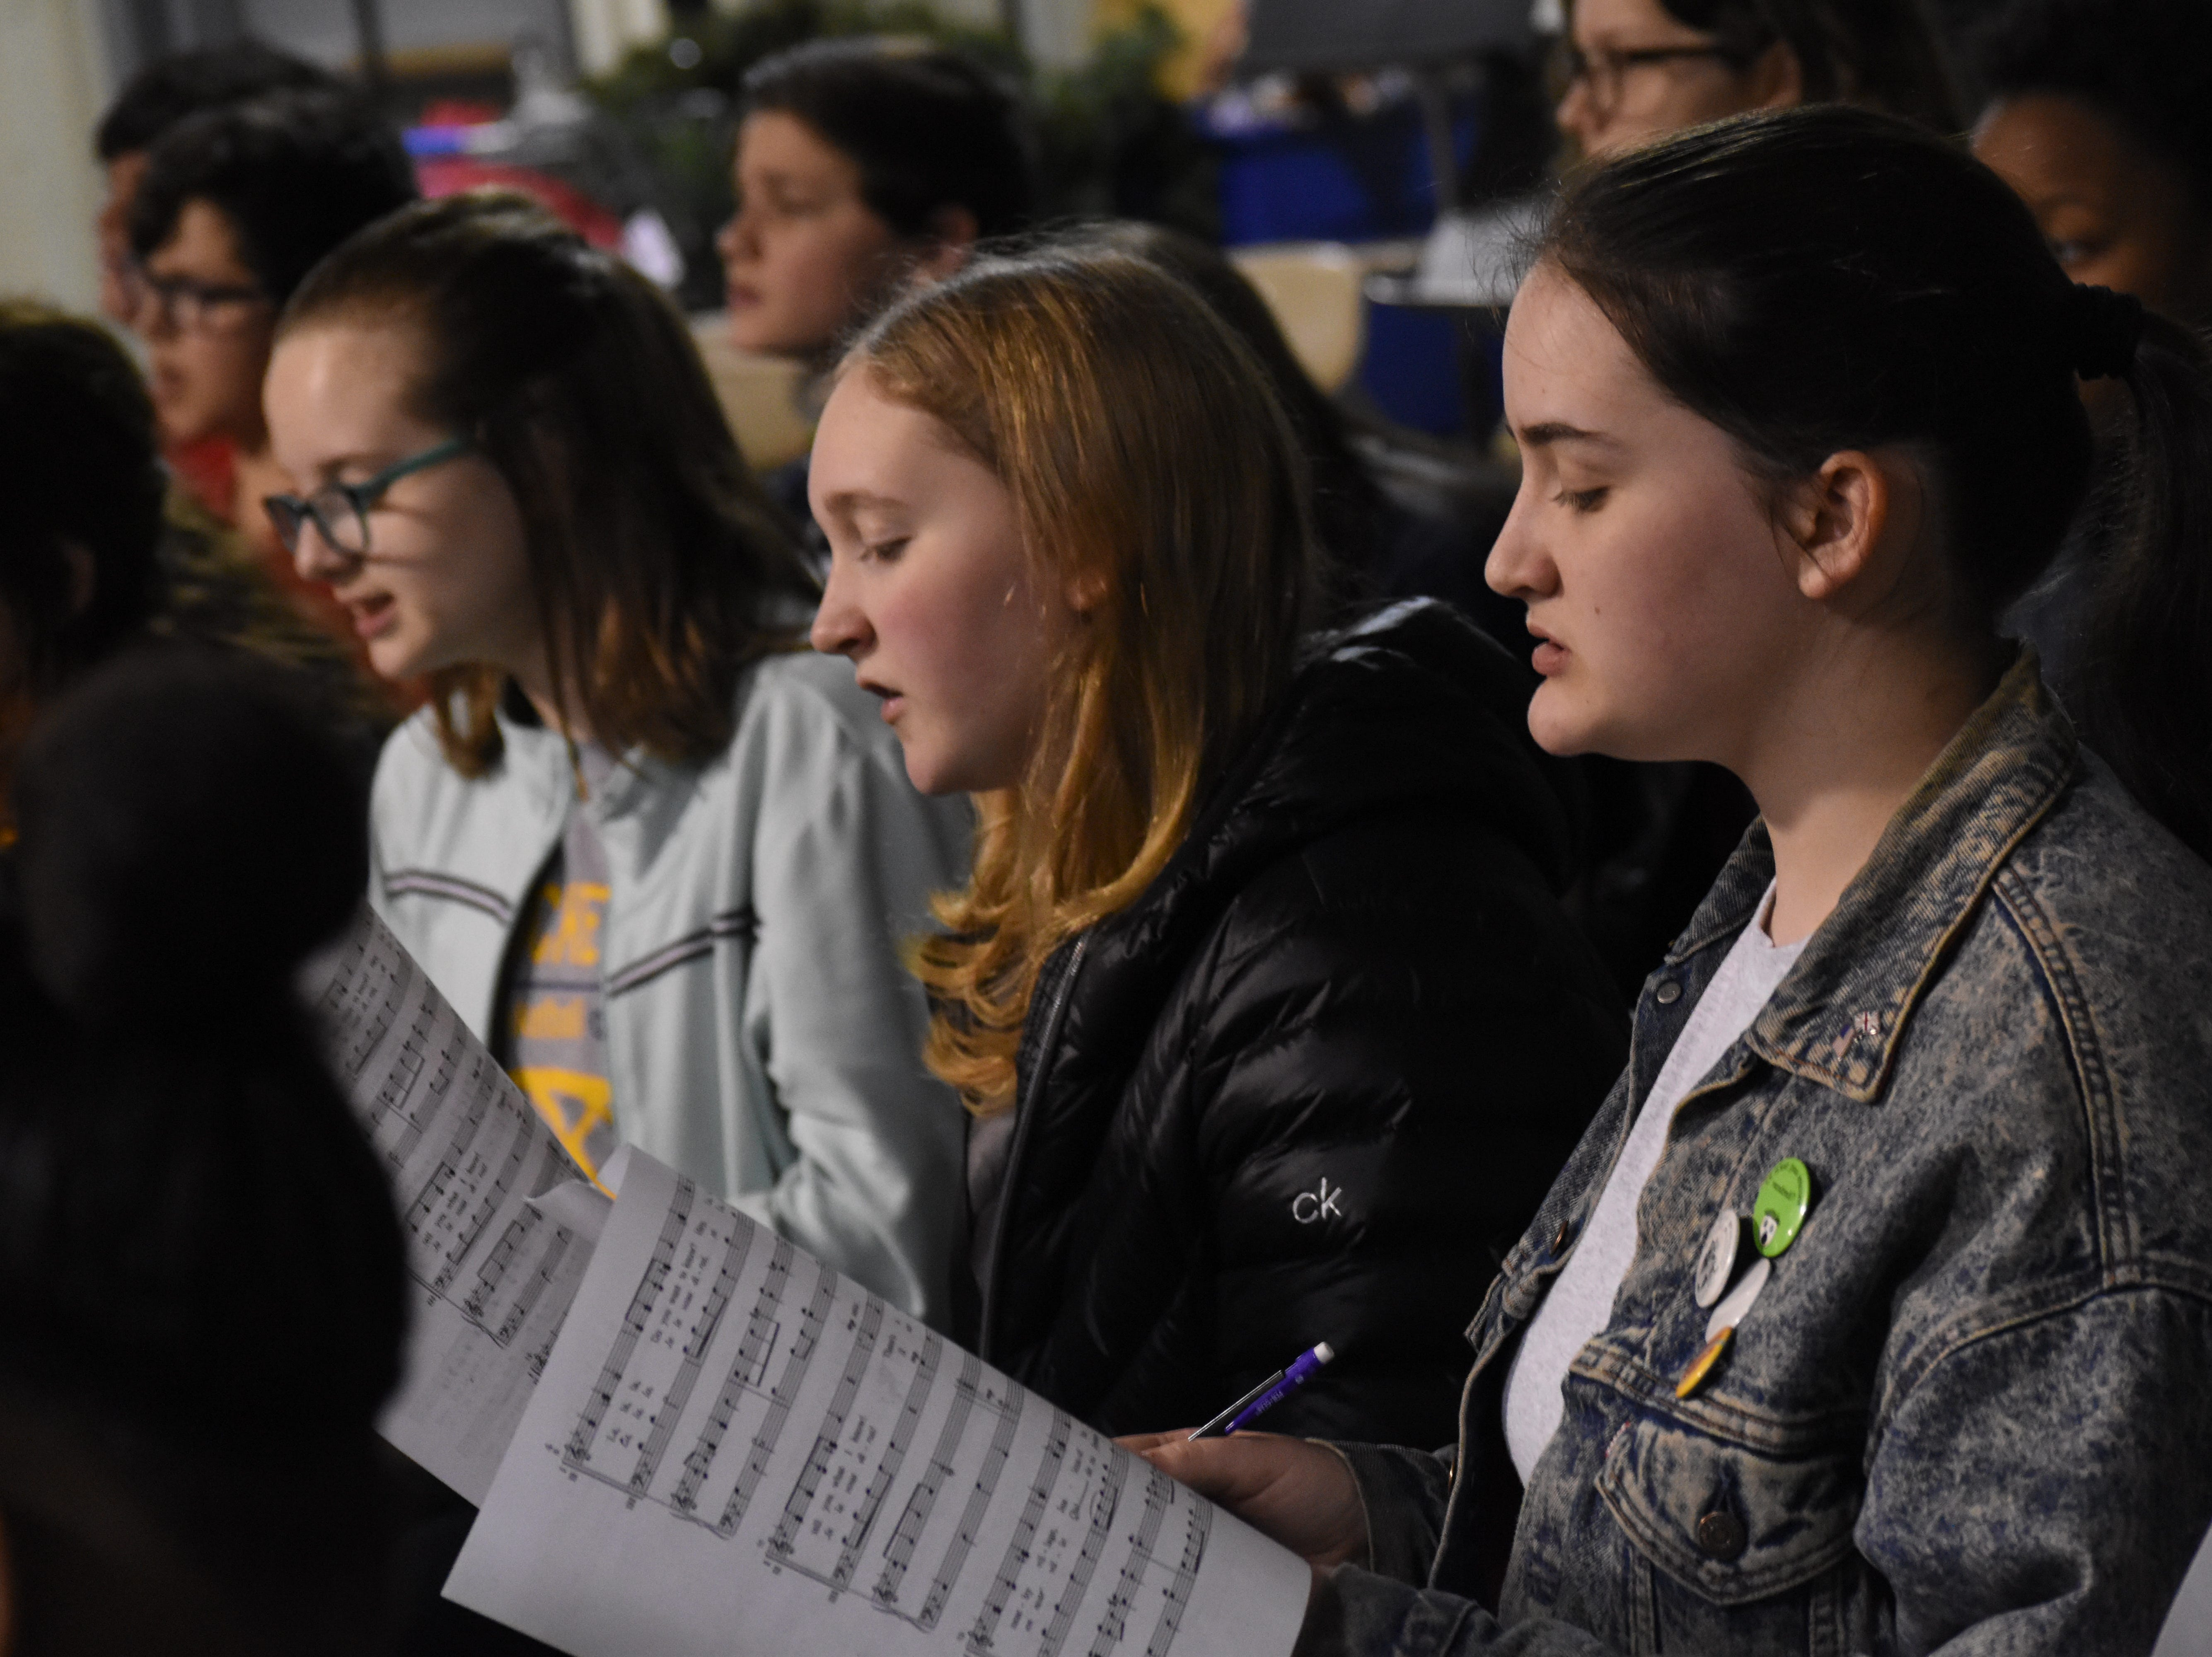 About 400 students from Avoyelles, Natchitoches, Grant and Rapides parishes rehearse Friday, Feb. 1, 2019 at Pineville High School for the District II Vocal Music Teachers Association's annual Honor Choir Students are representing 12 area schools. The Honor Choir Concert is set for 11 a.m. Saturday, Feb. 2, 2019 in the PHS auditorium. 